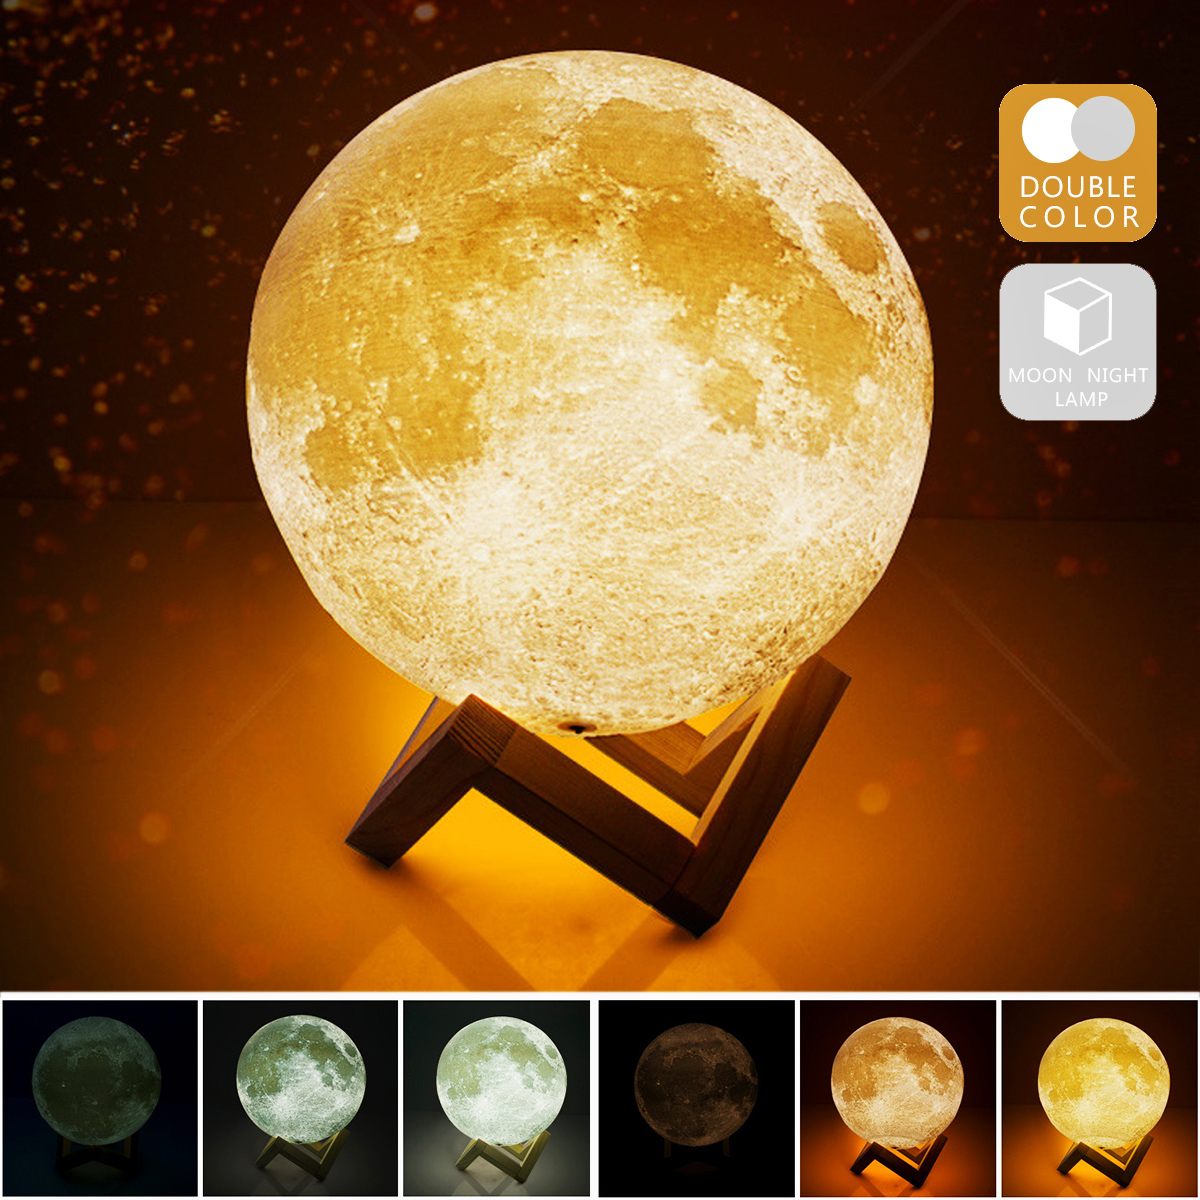 8M/10M/15M USB Night Moon Light Rechargeable Colorful Change Creative LED Night Light 3D Printing Technology For Home Decor